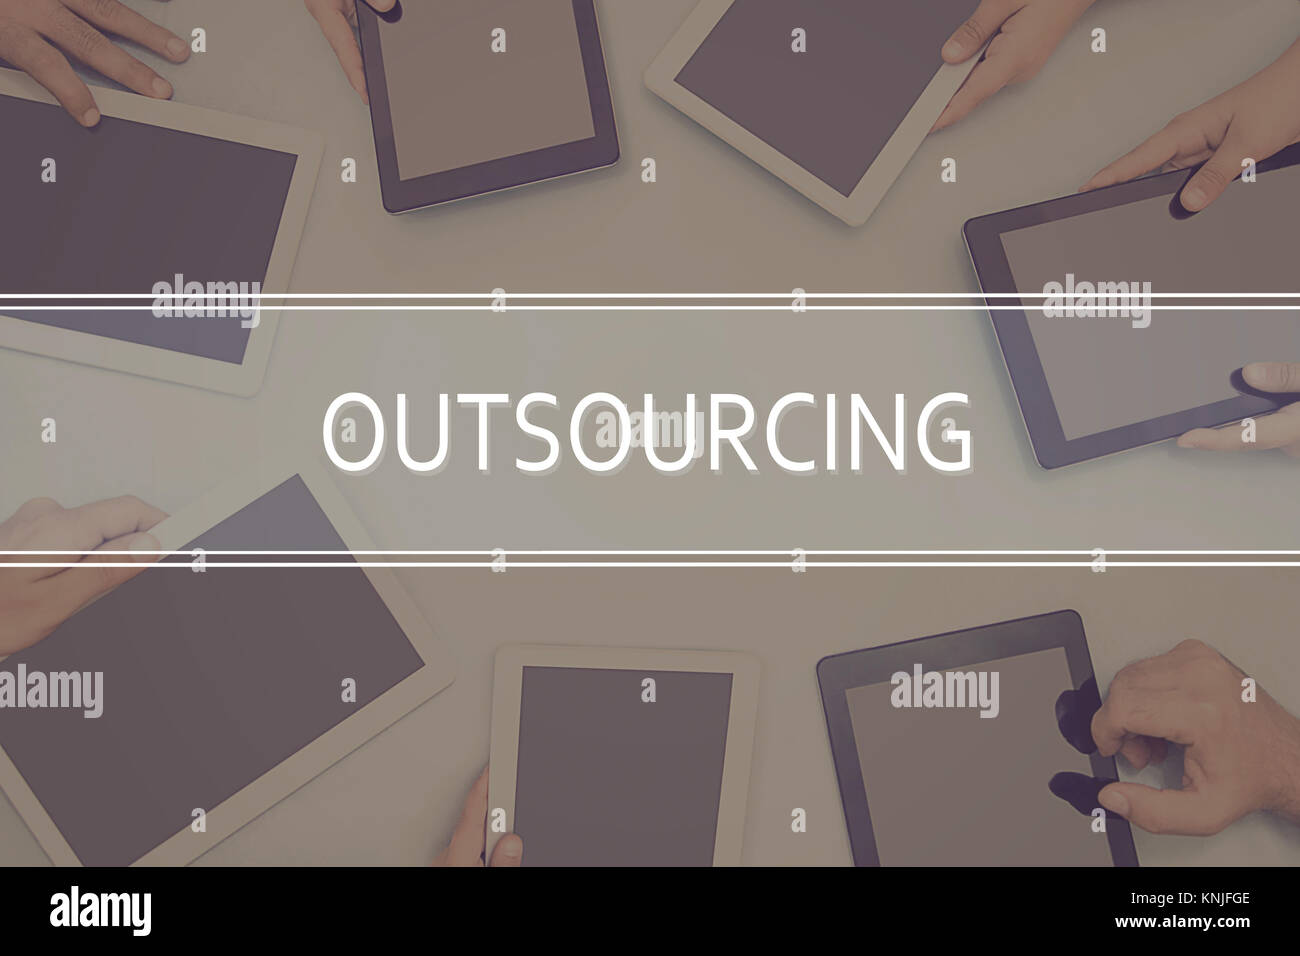 OUTSOURCING CONCEPT Business Concept. - Stock Image